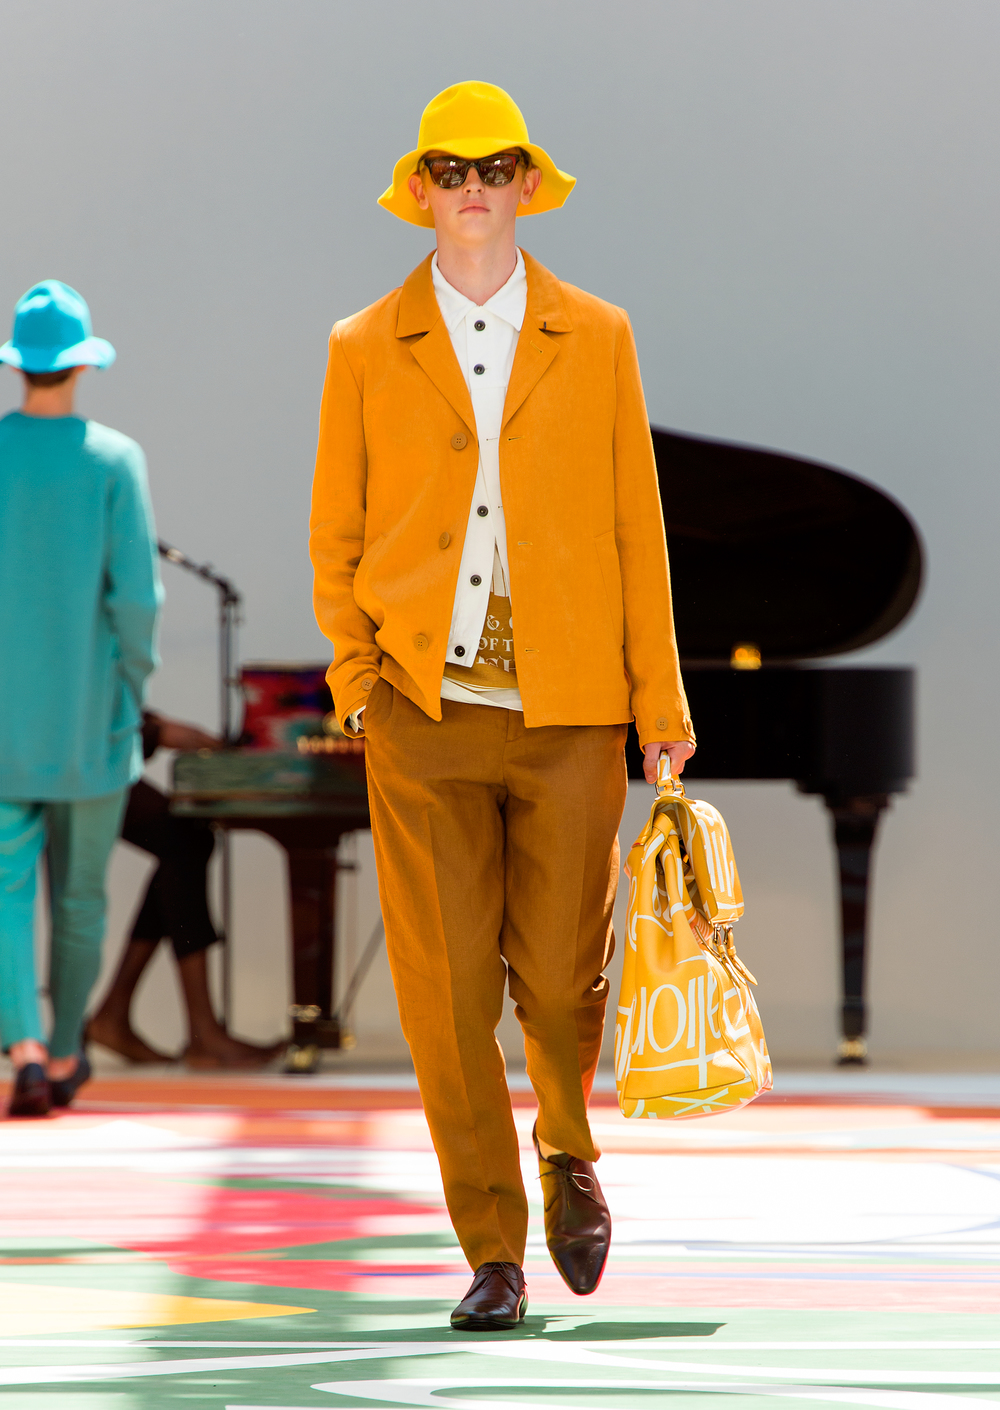 Burberry Prorsum Menswear Spring Summer 2015 Collection - Look 21.jpg